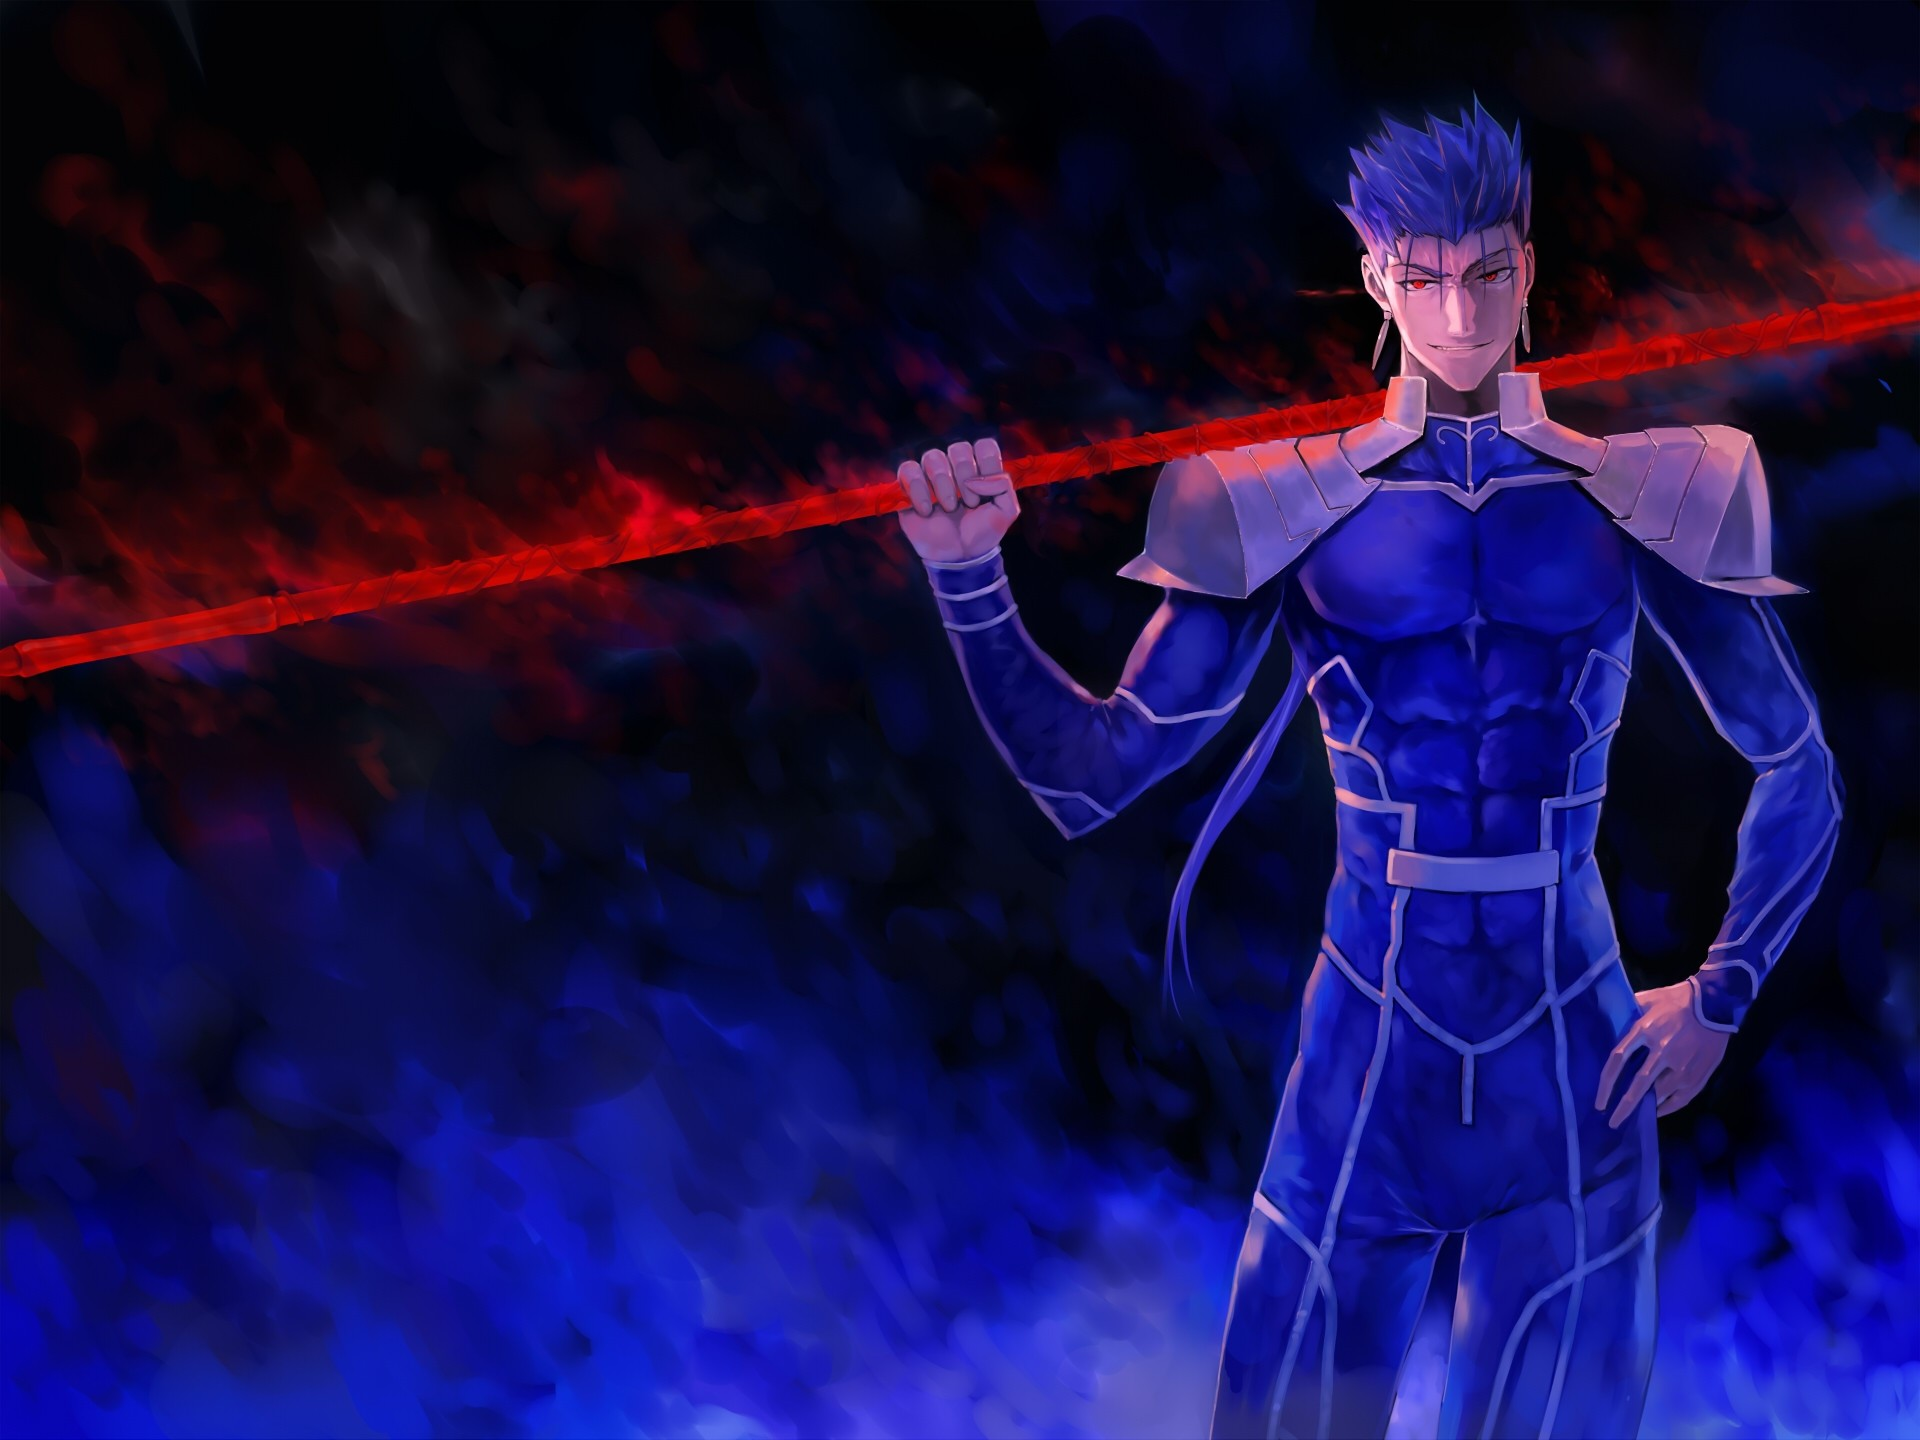 1920x1440 Fate/stay night, Fate/stay night: Unlimited Blade Works, Fate/